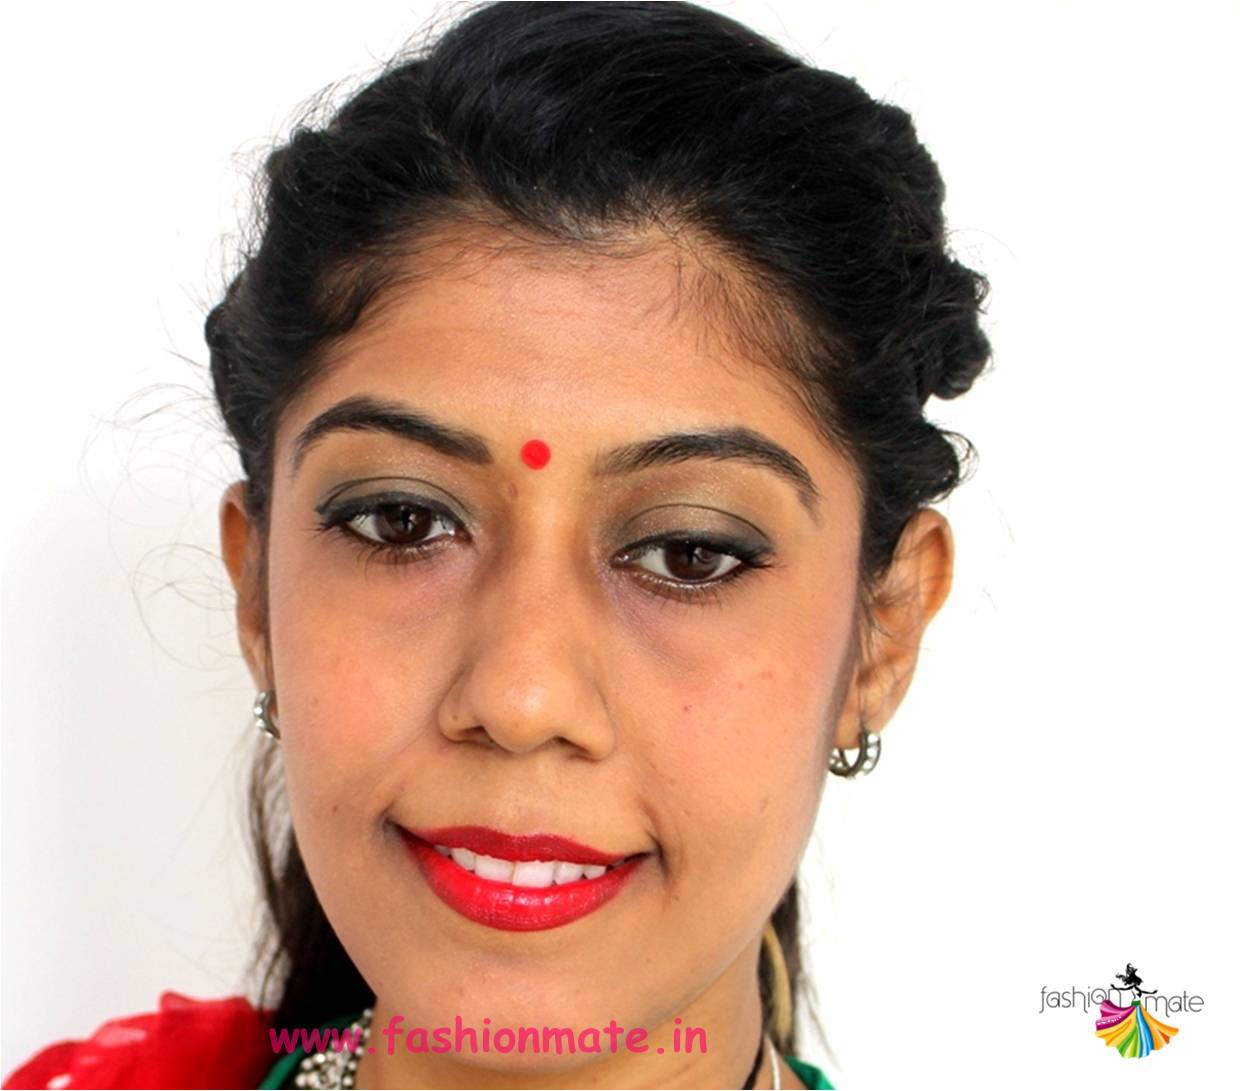 smokey eyes makeup for navratri - Indian beauty blogger